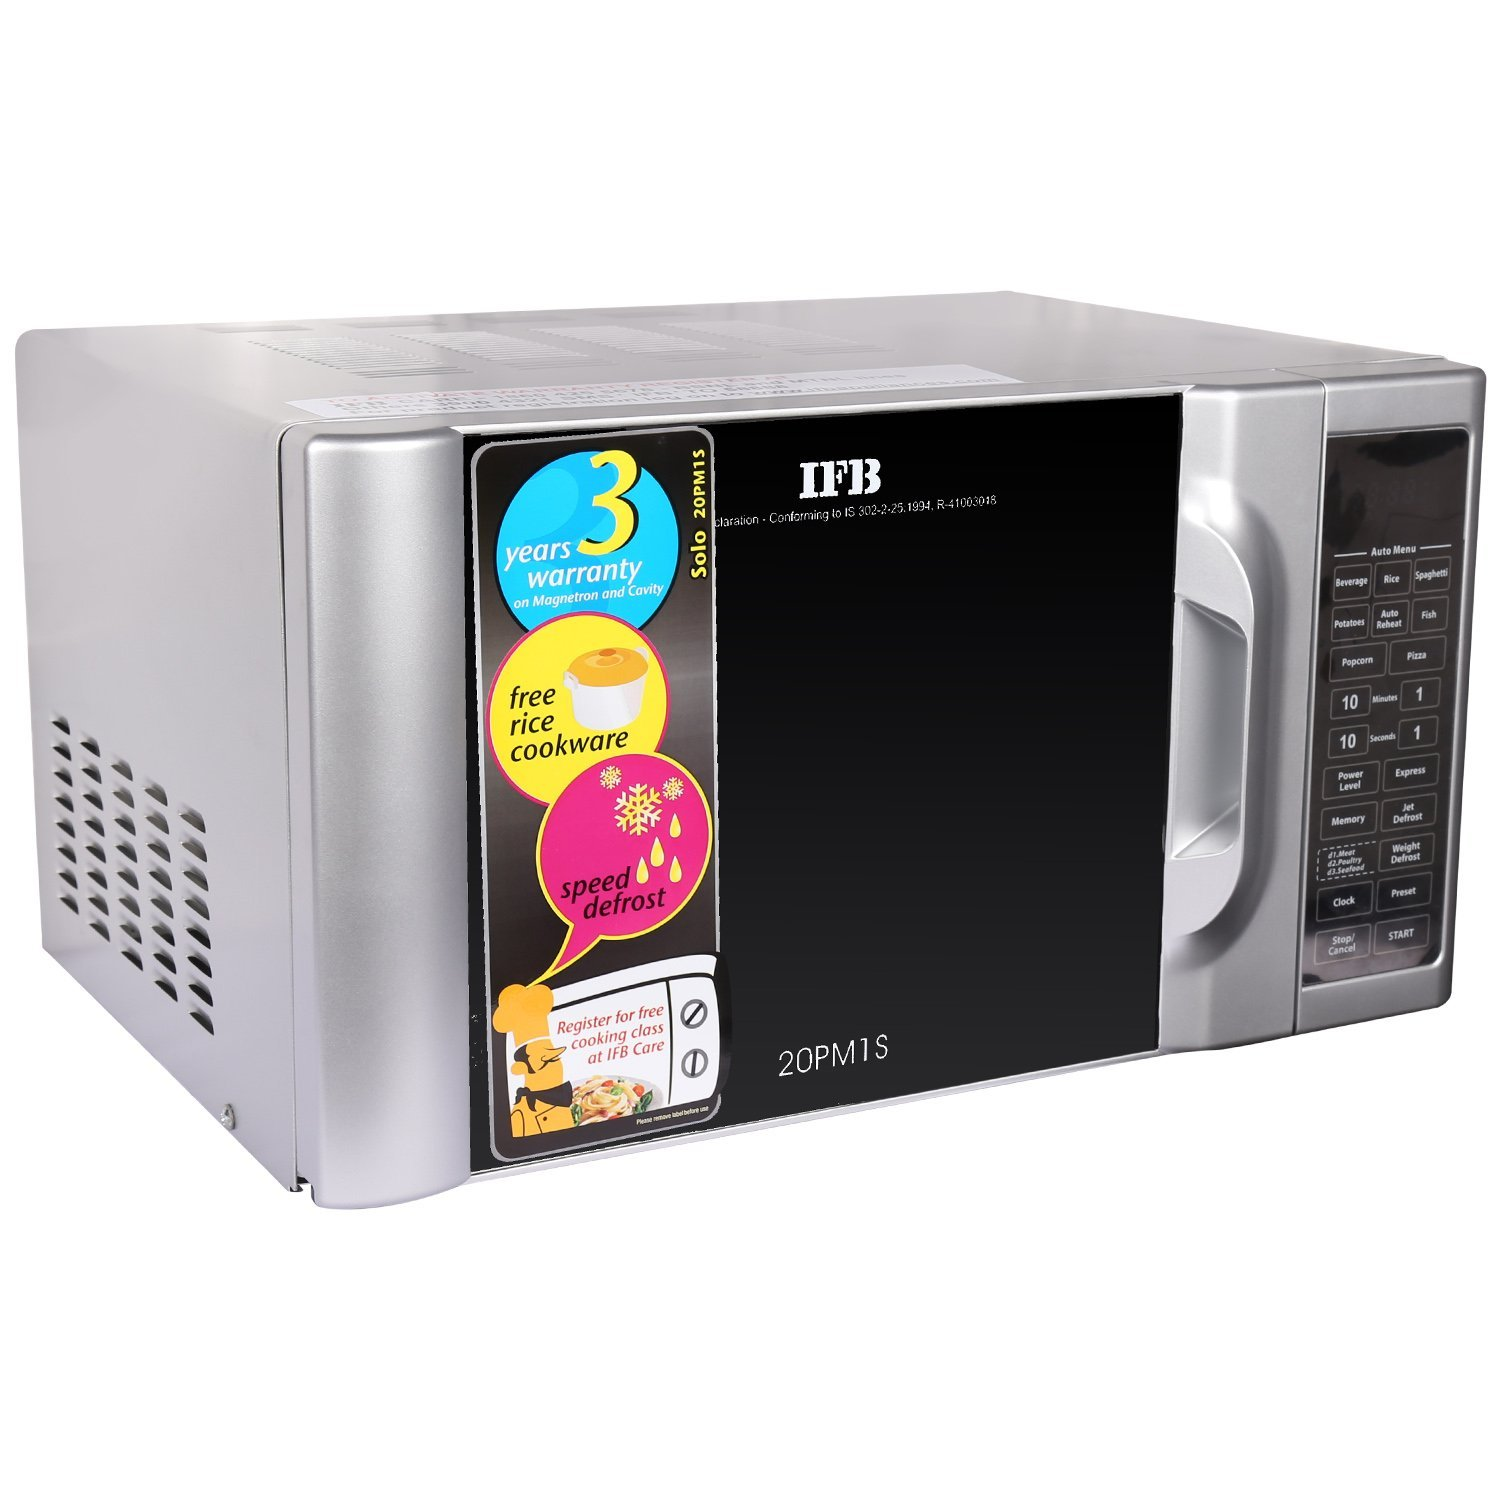 IFB 20 Liters microwave oven